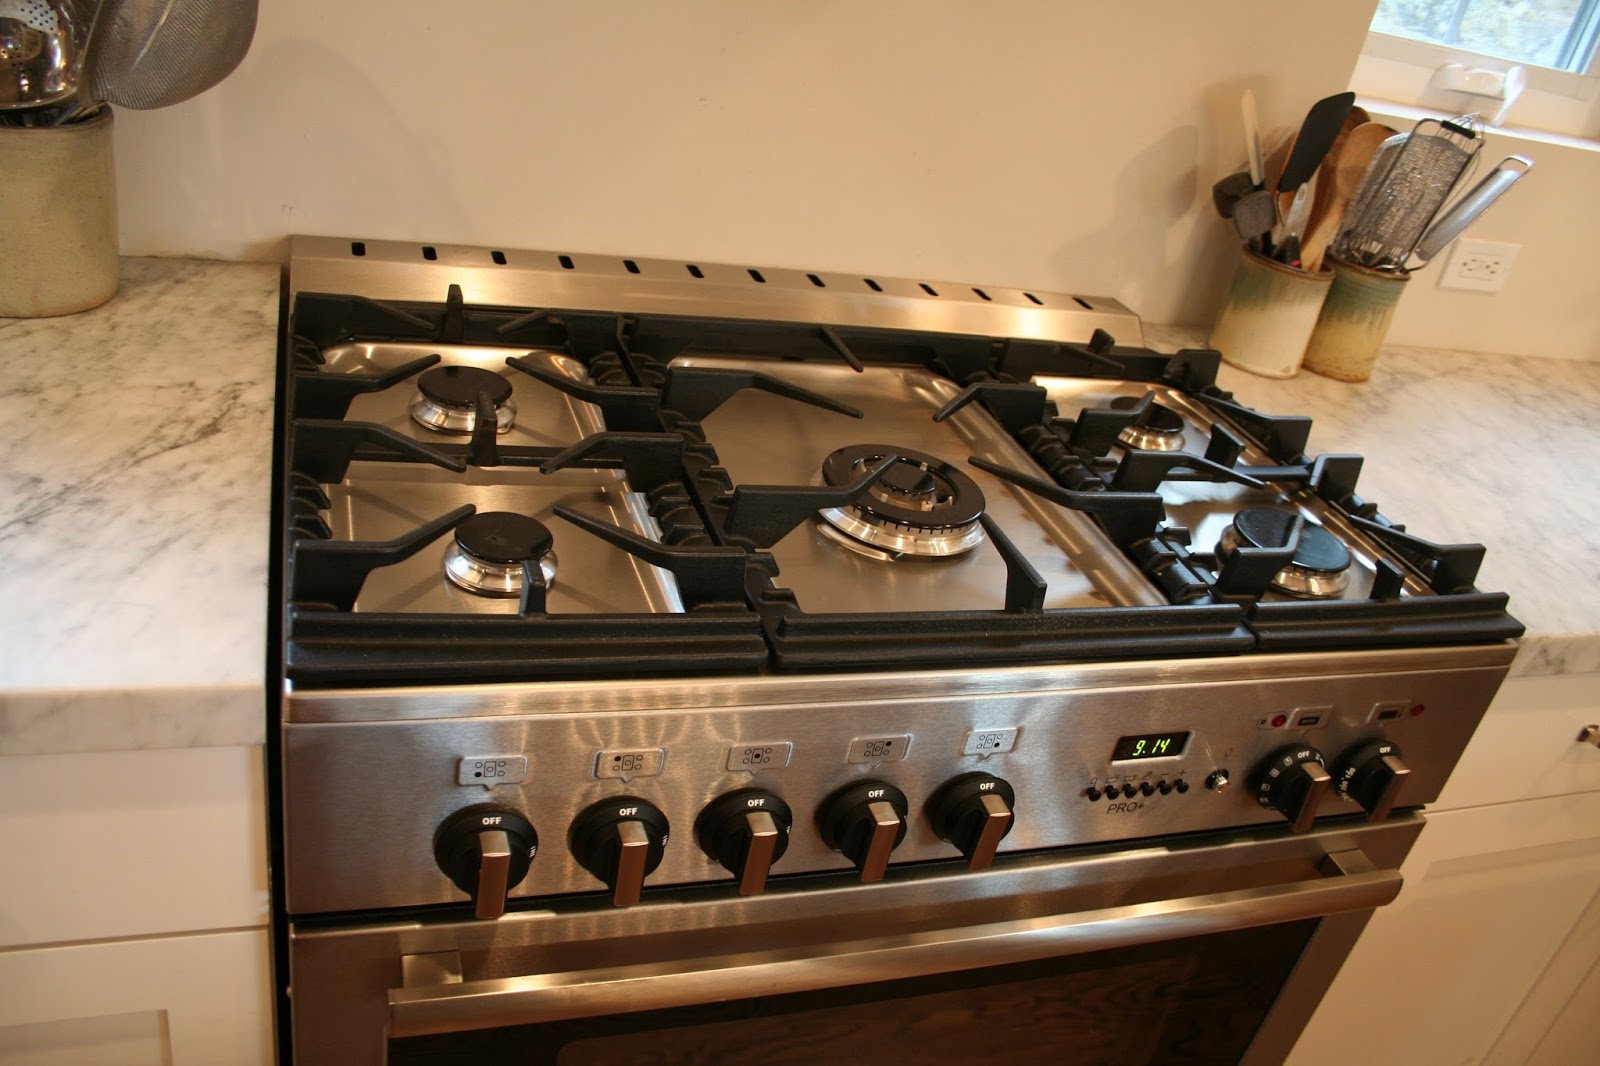 Aga Kitchen Appliances Design Dump My New Aga Range